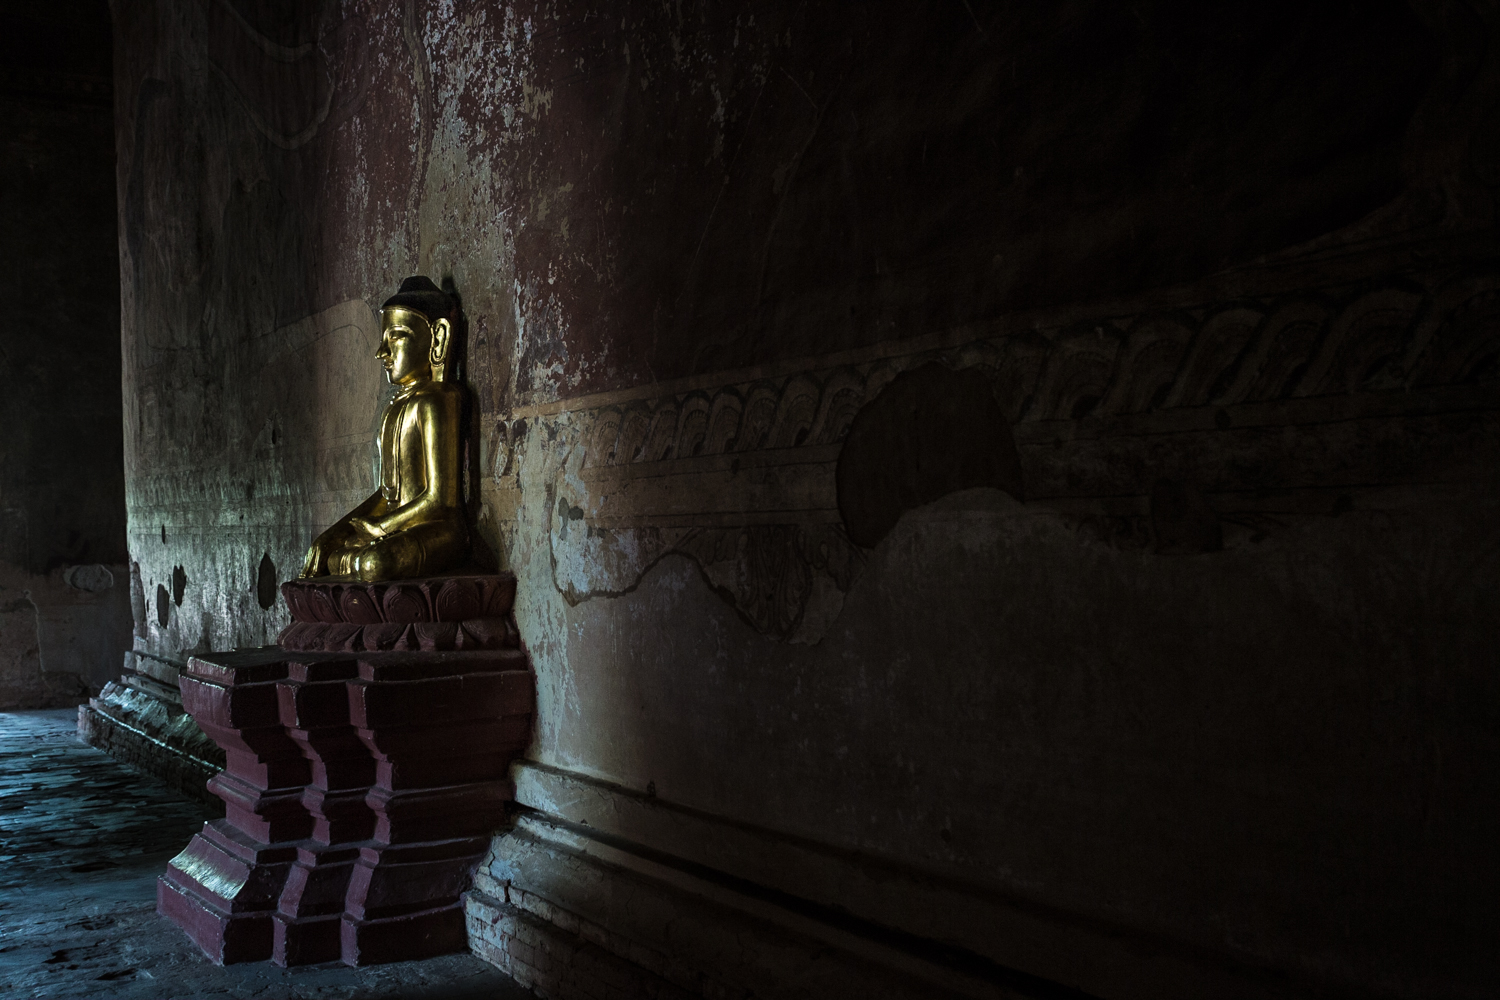 Relatively new Buddhas grace otherwise ancient structures.